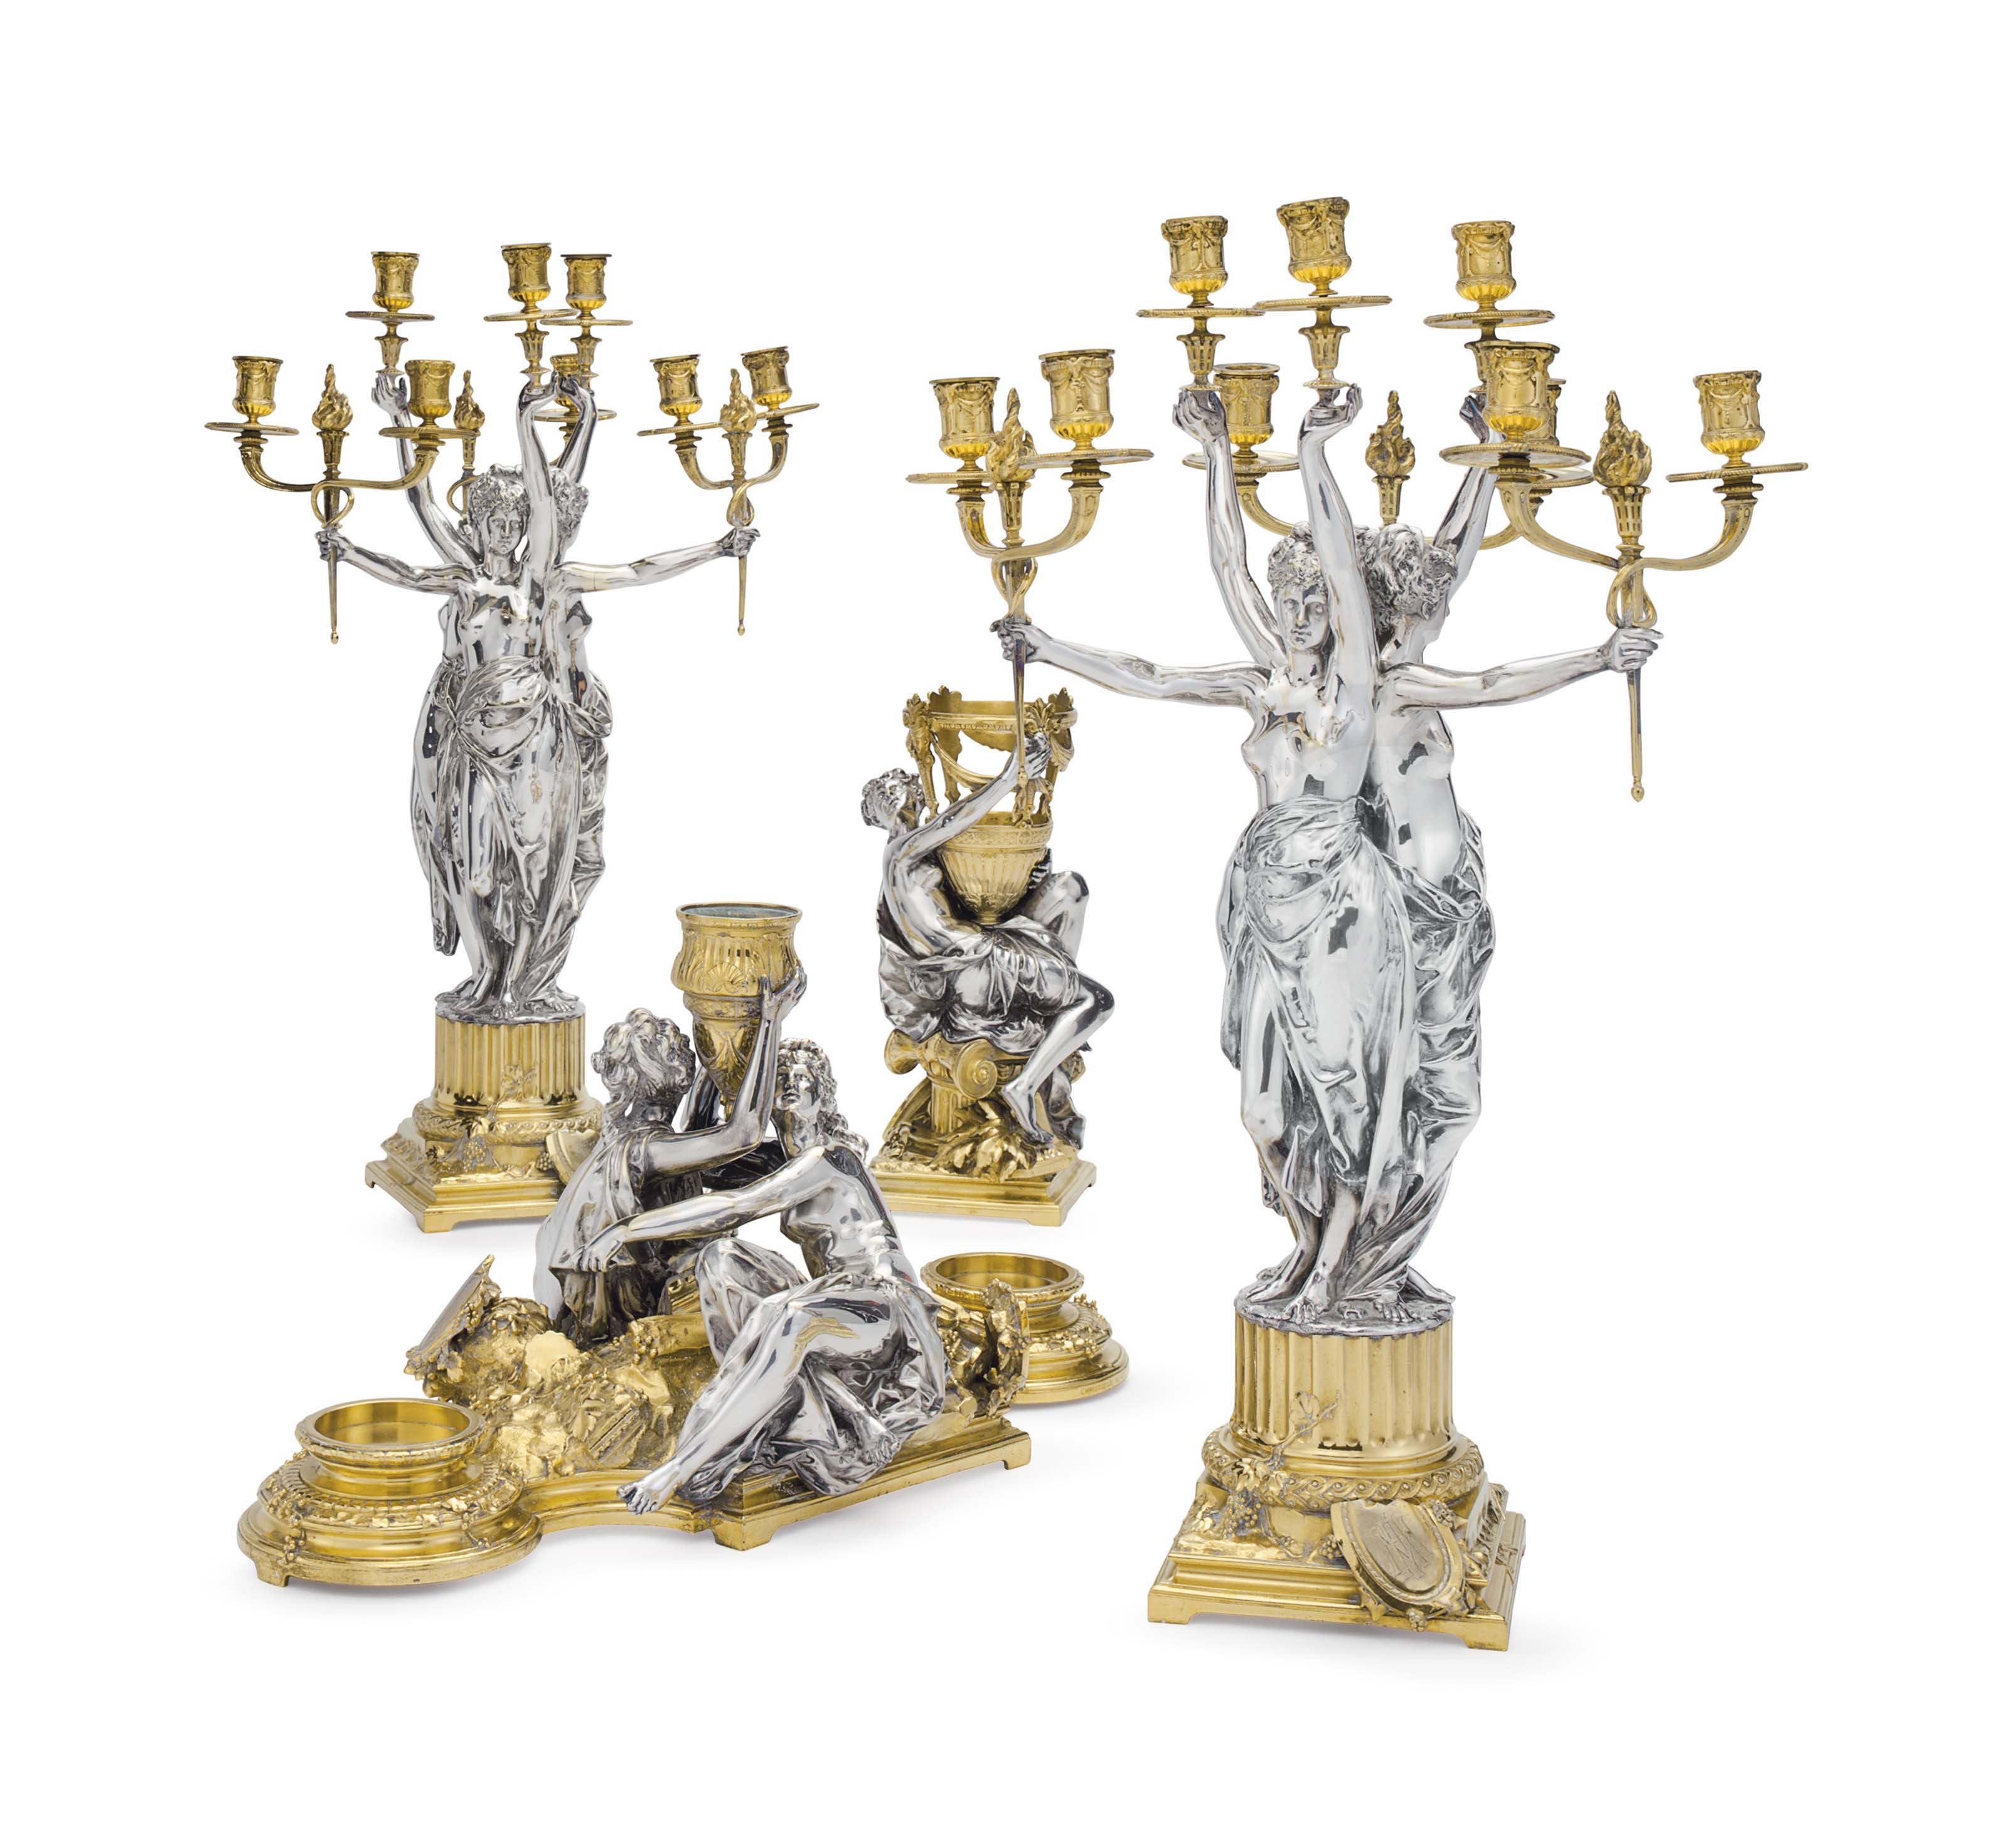 A FINE FRENCH ORMOLU AND ELECTROPLATED FOUR-PIECE GARNITURE